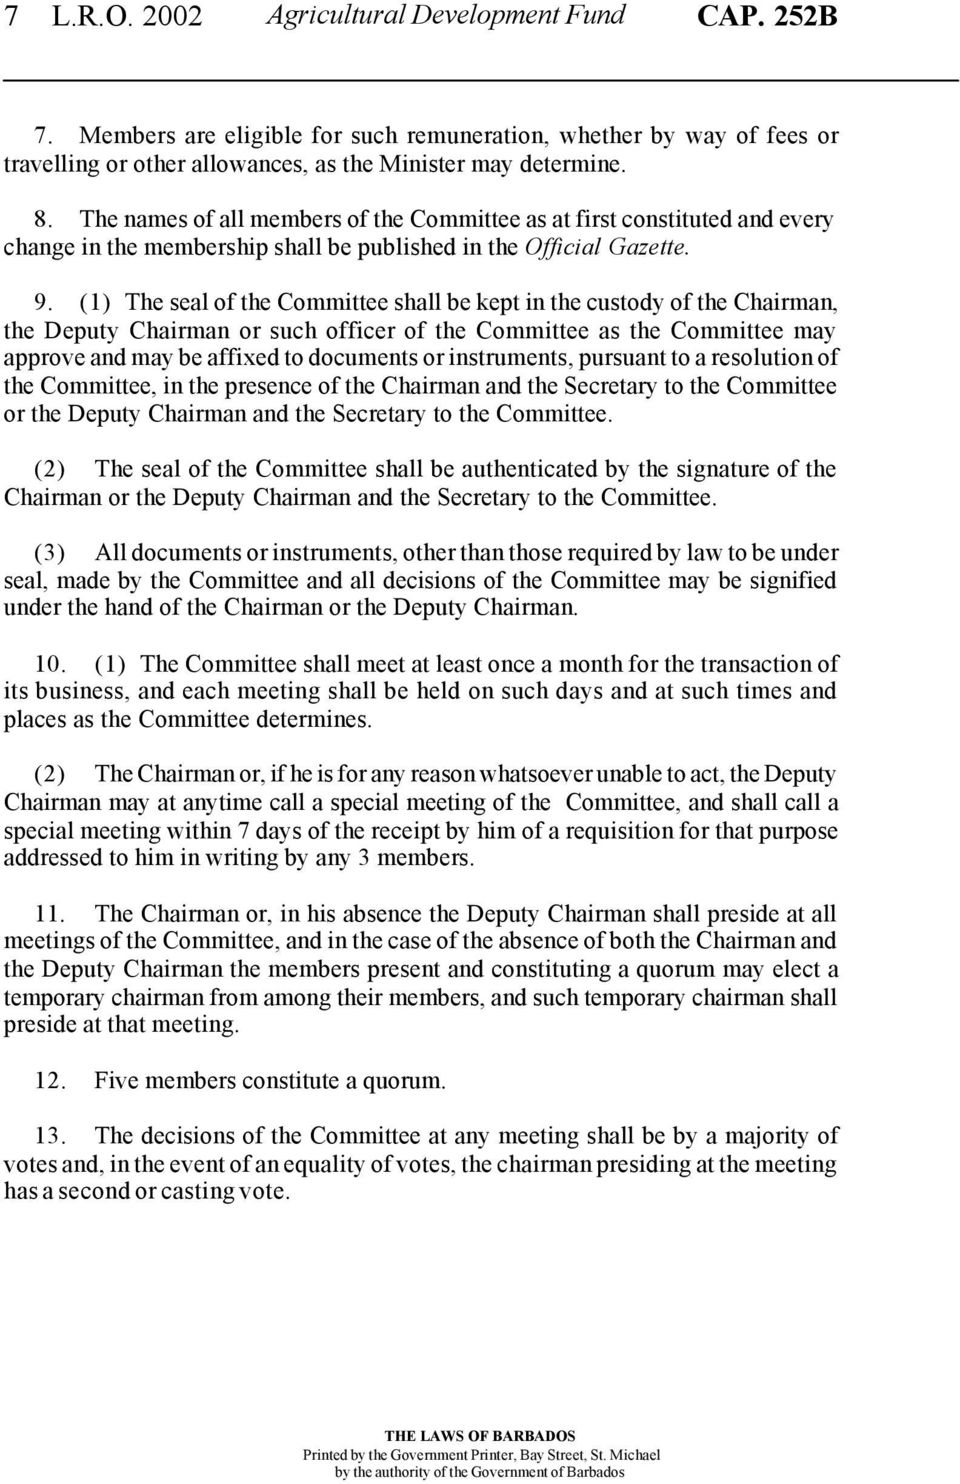 (1) The seal of the Committee shall be kept in the custody of the Chairman, the Deputy Chairman or such officer of the Committee as the Committee may approve and may be affixed to documents or